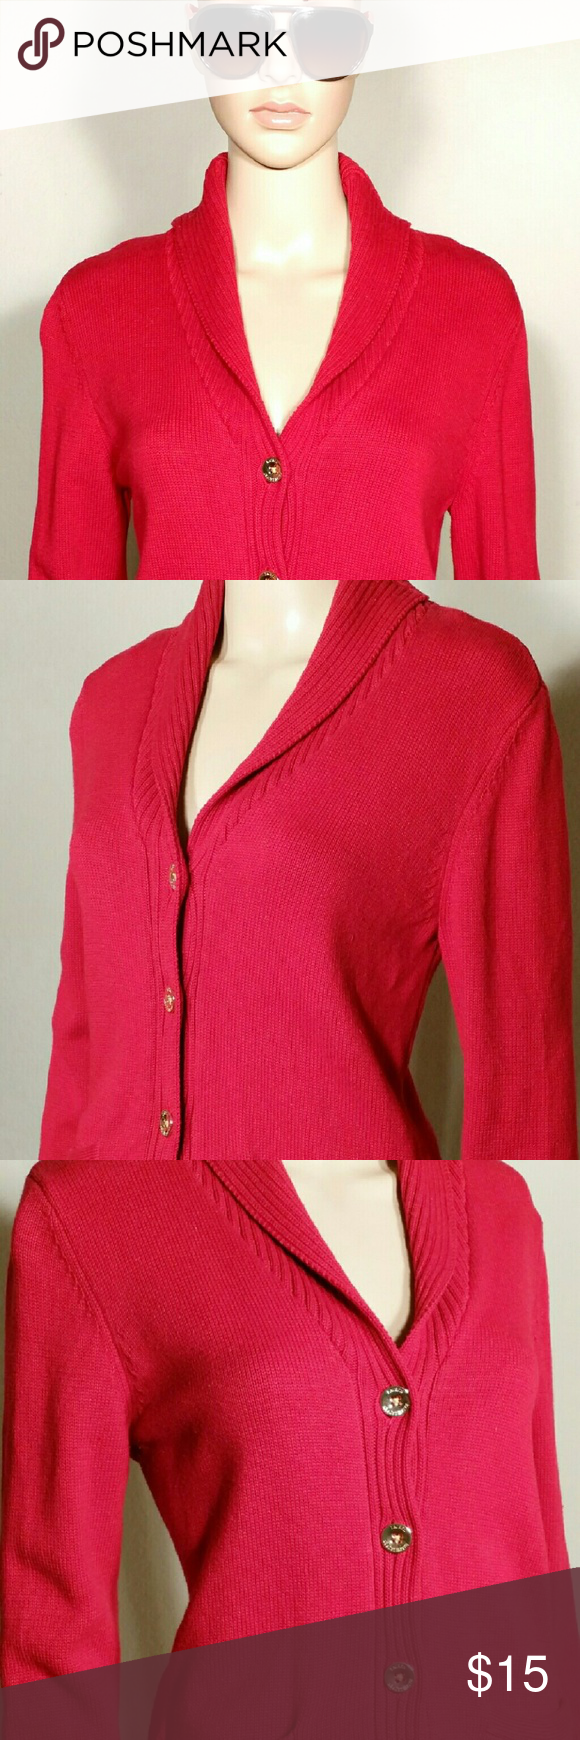 Ralph Lauren Womens Red Button Cardigan Size M MEDIUM - 100% Cotton In very good condition!! Very Adorable!! Fast Shipping!! Ralph Lauren Sweaters Cardigans